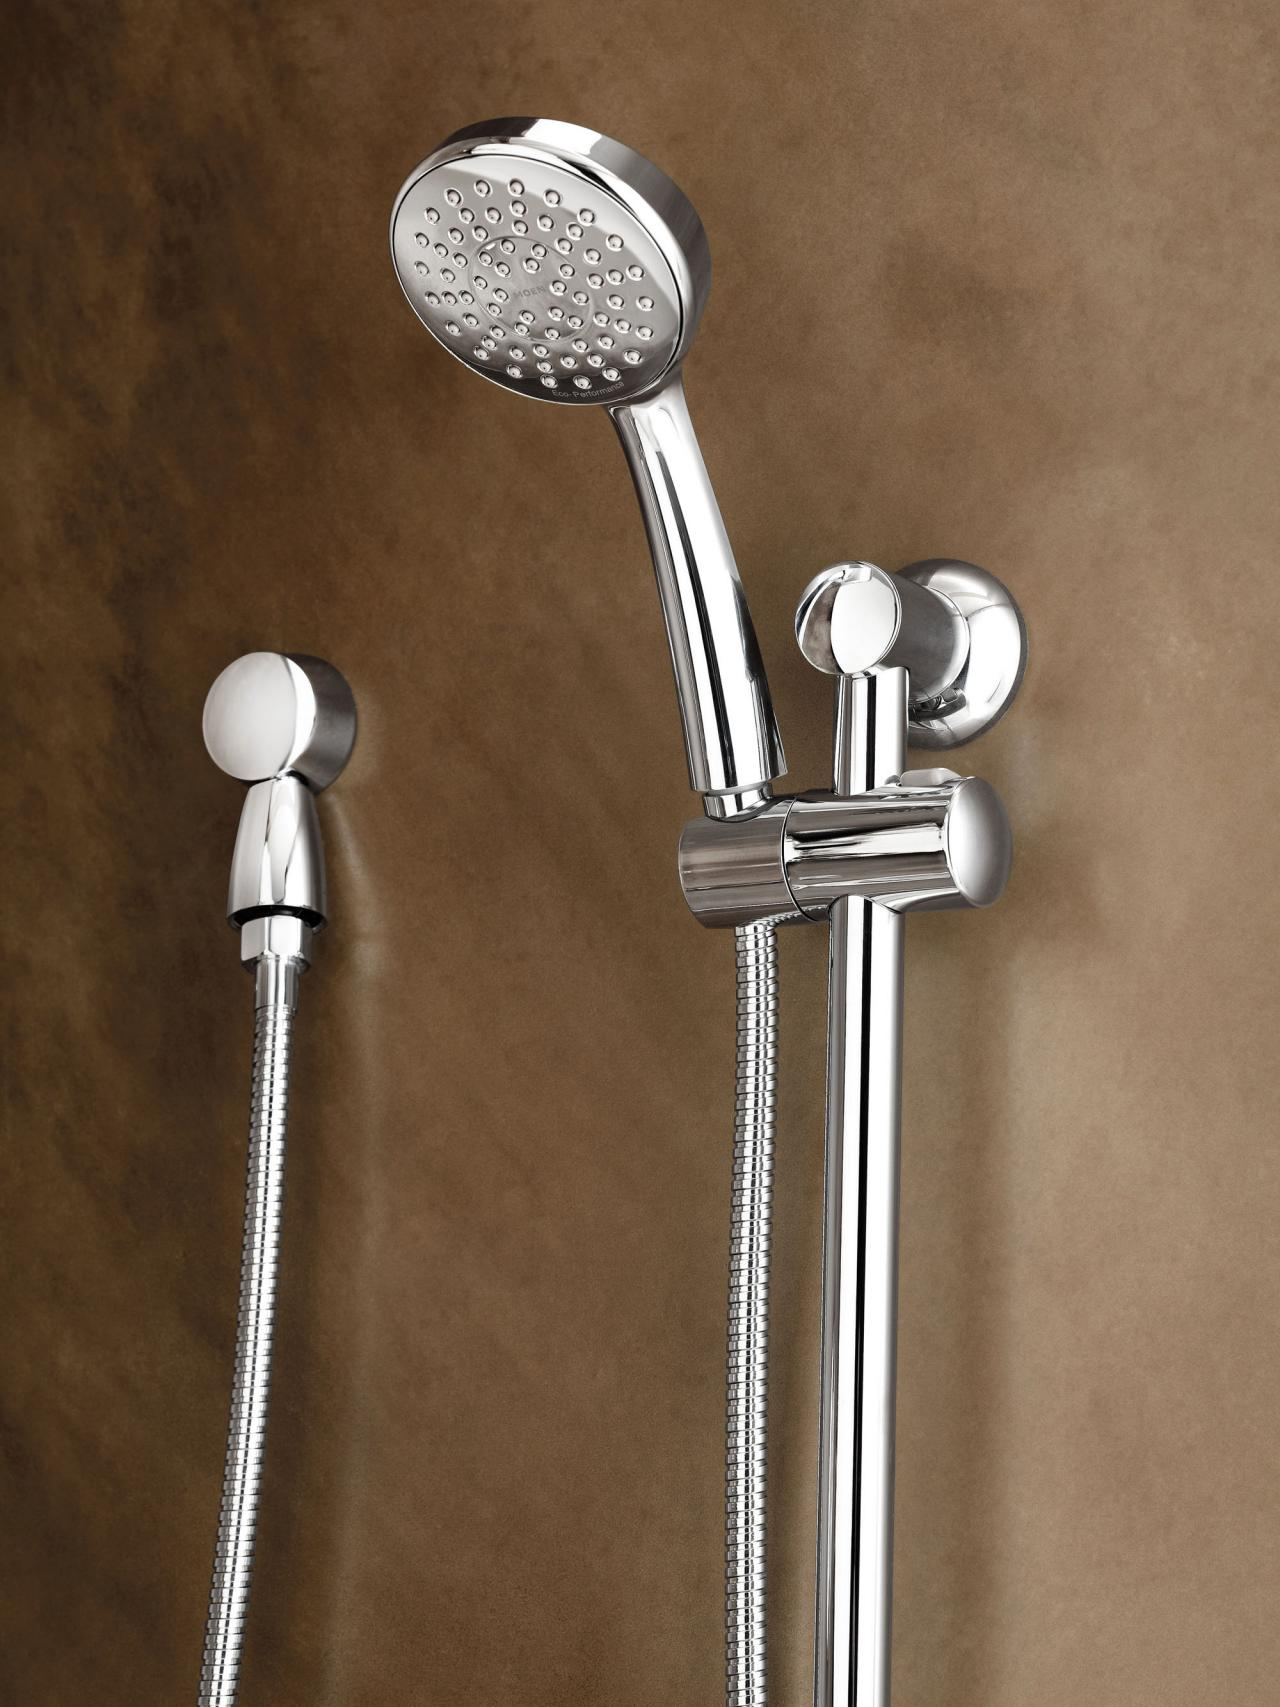 Moen Bath And Shower Faucets Choosing Bathroom Fixtures Hgtv